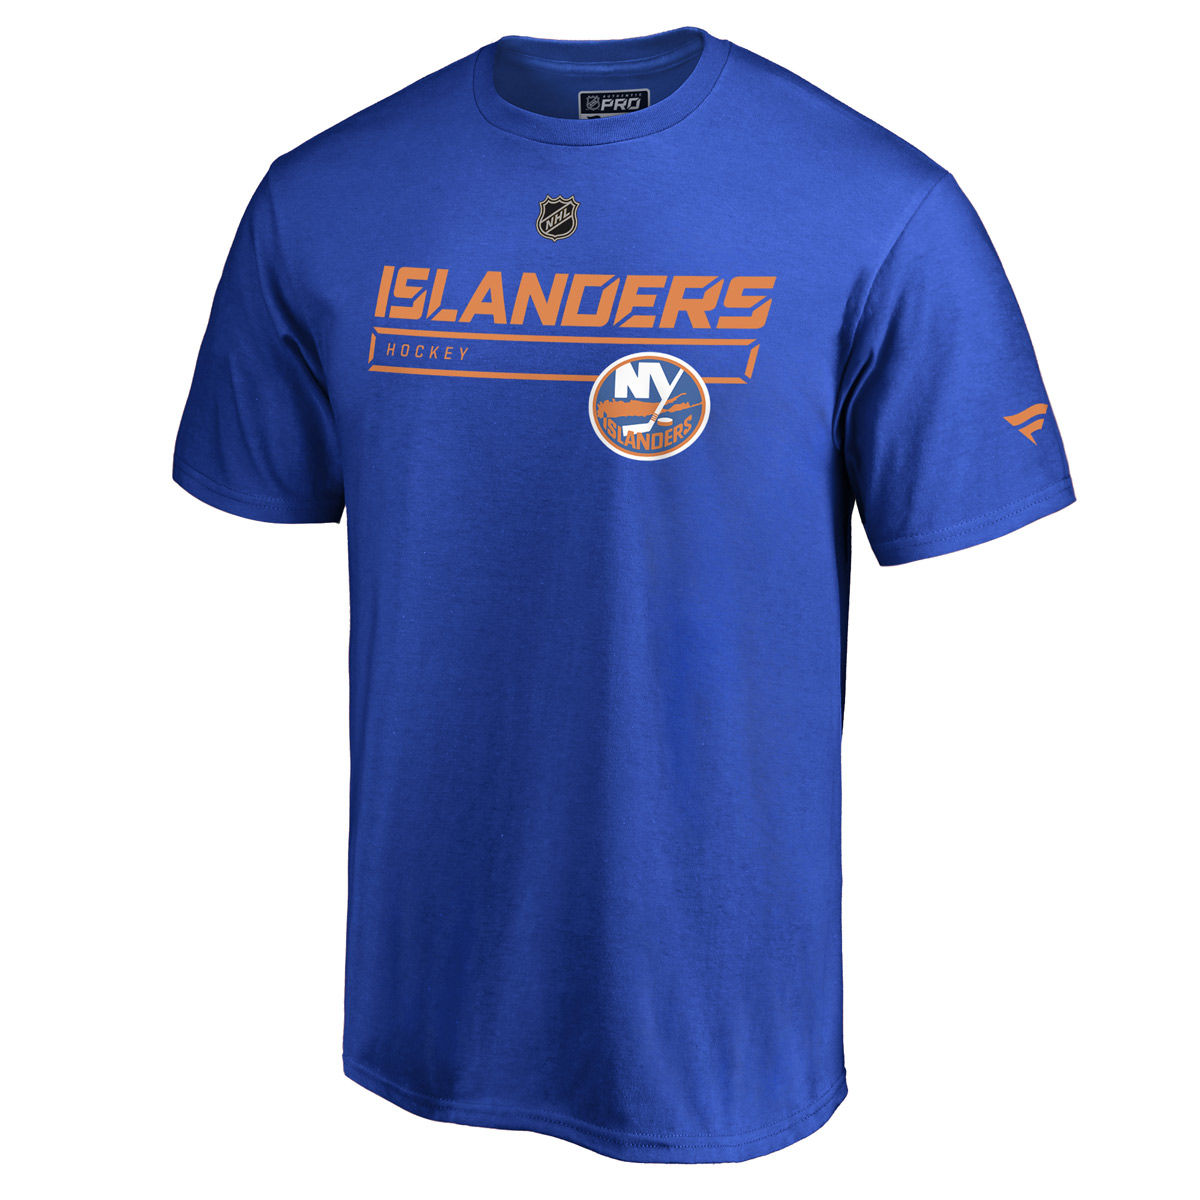 New York Islanders Adult Authentic Pro Prime T-Shirt